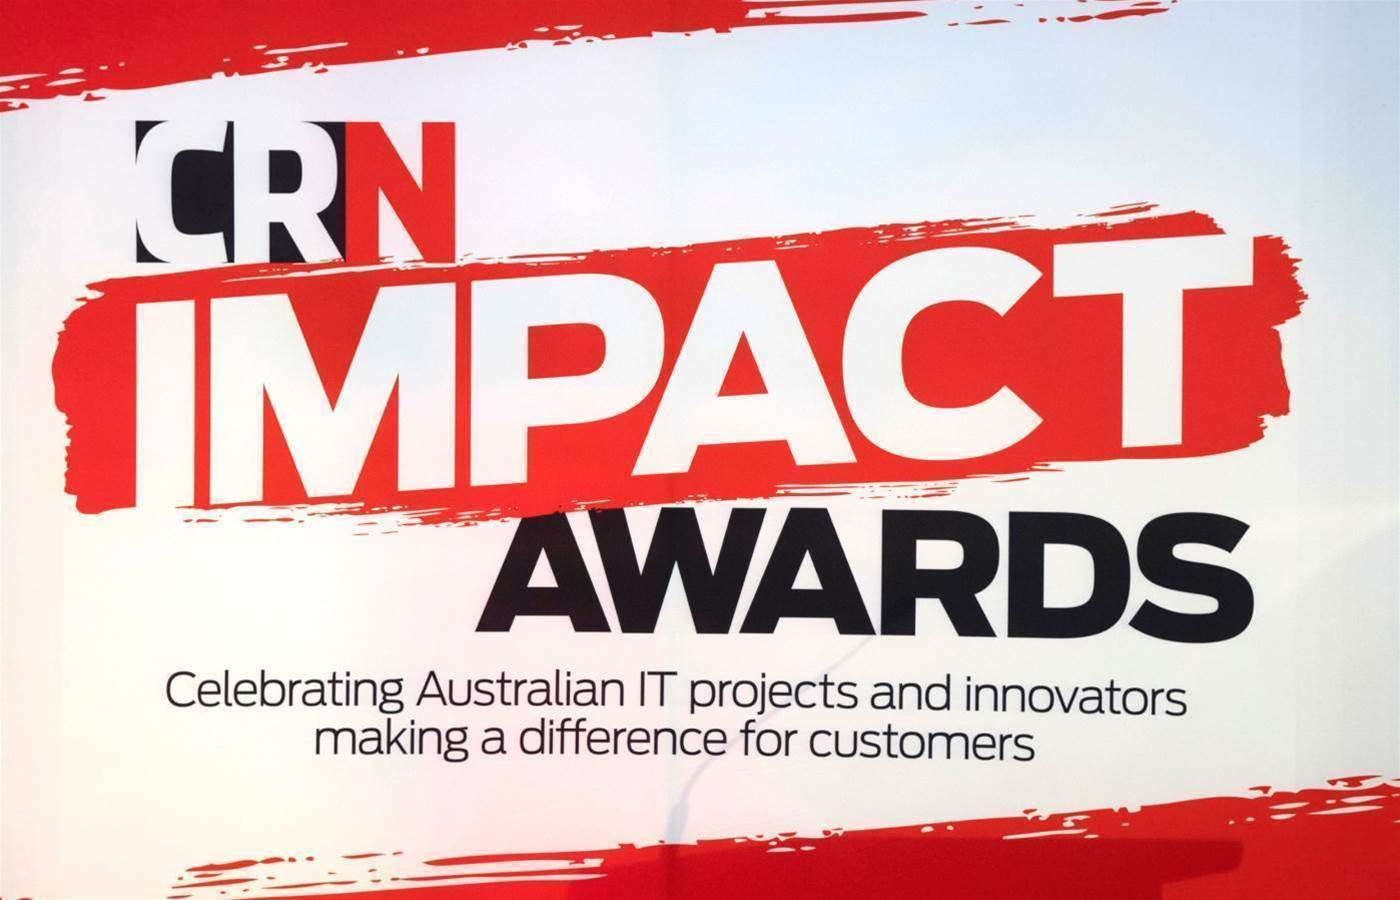 2019 CRN IMPACT Awards winners revealed!